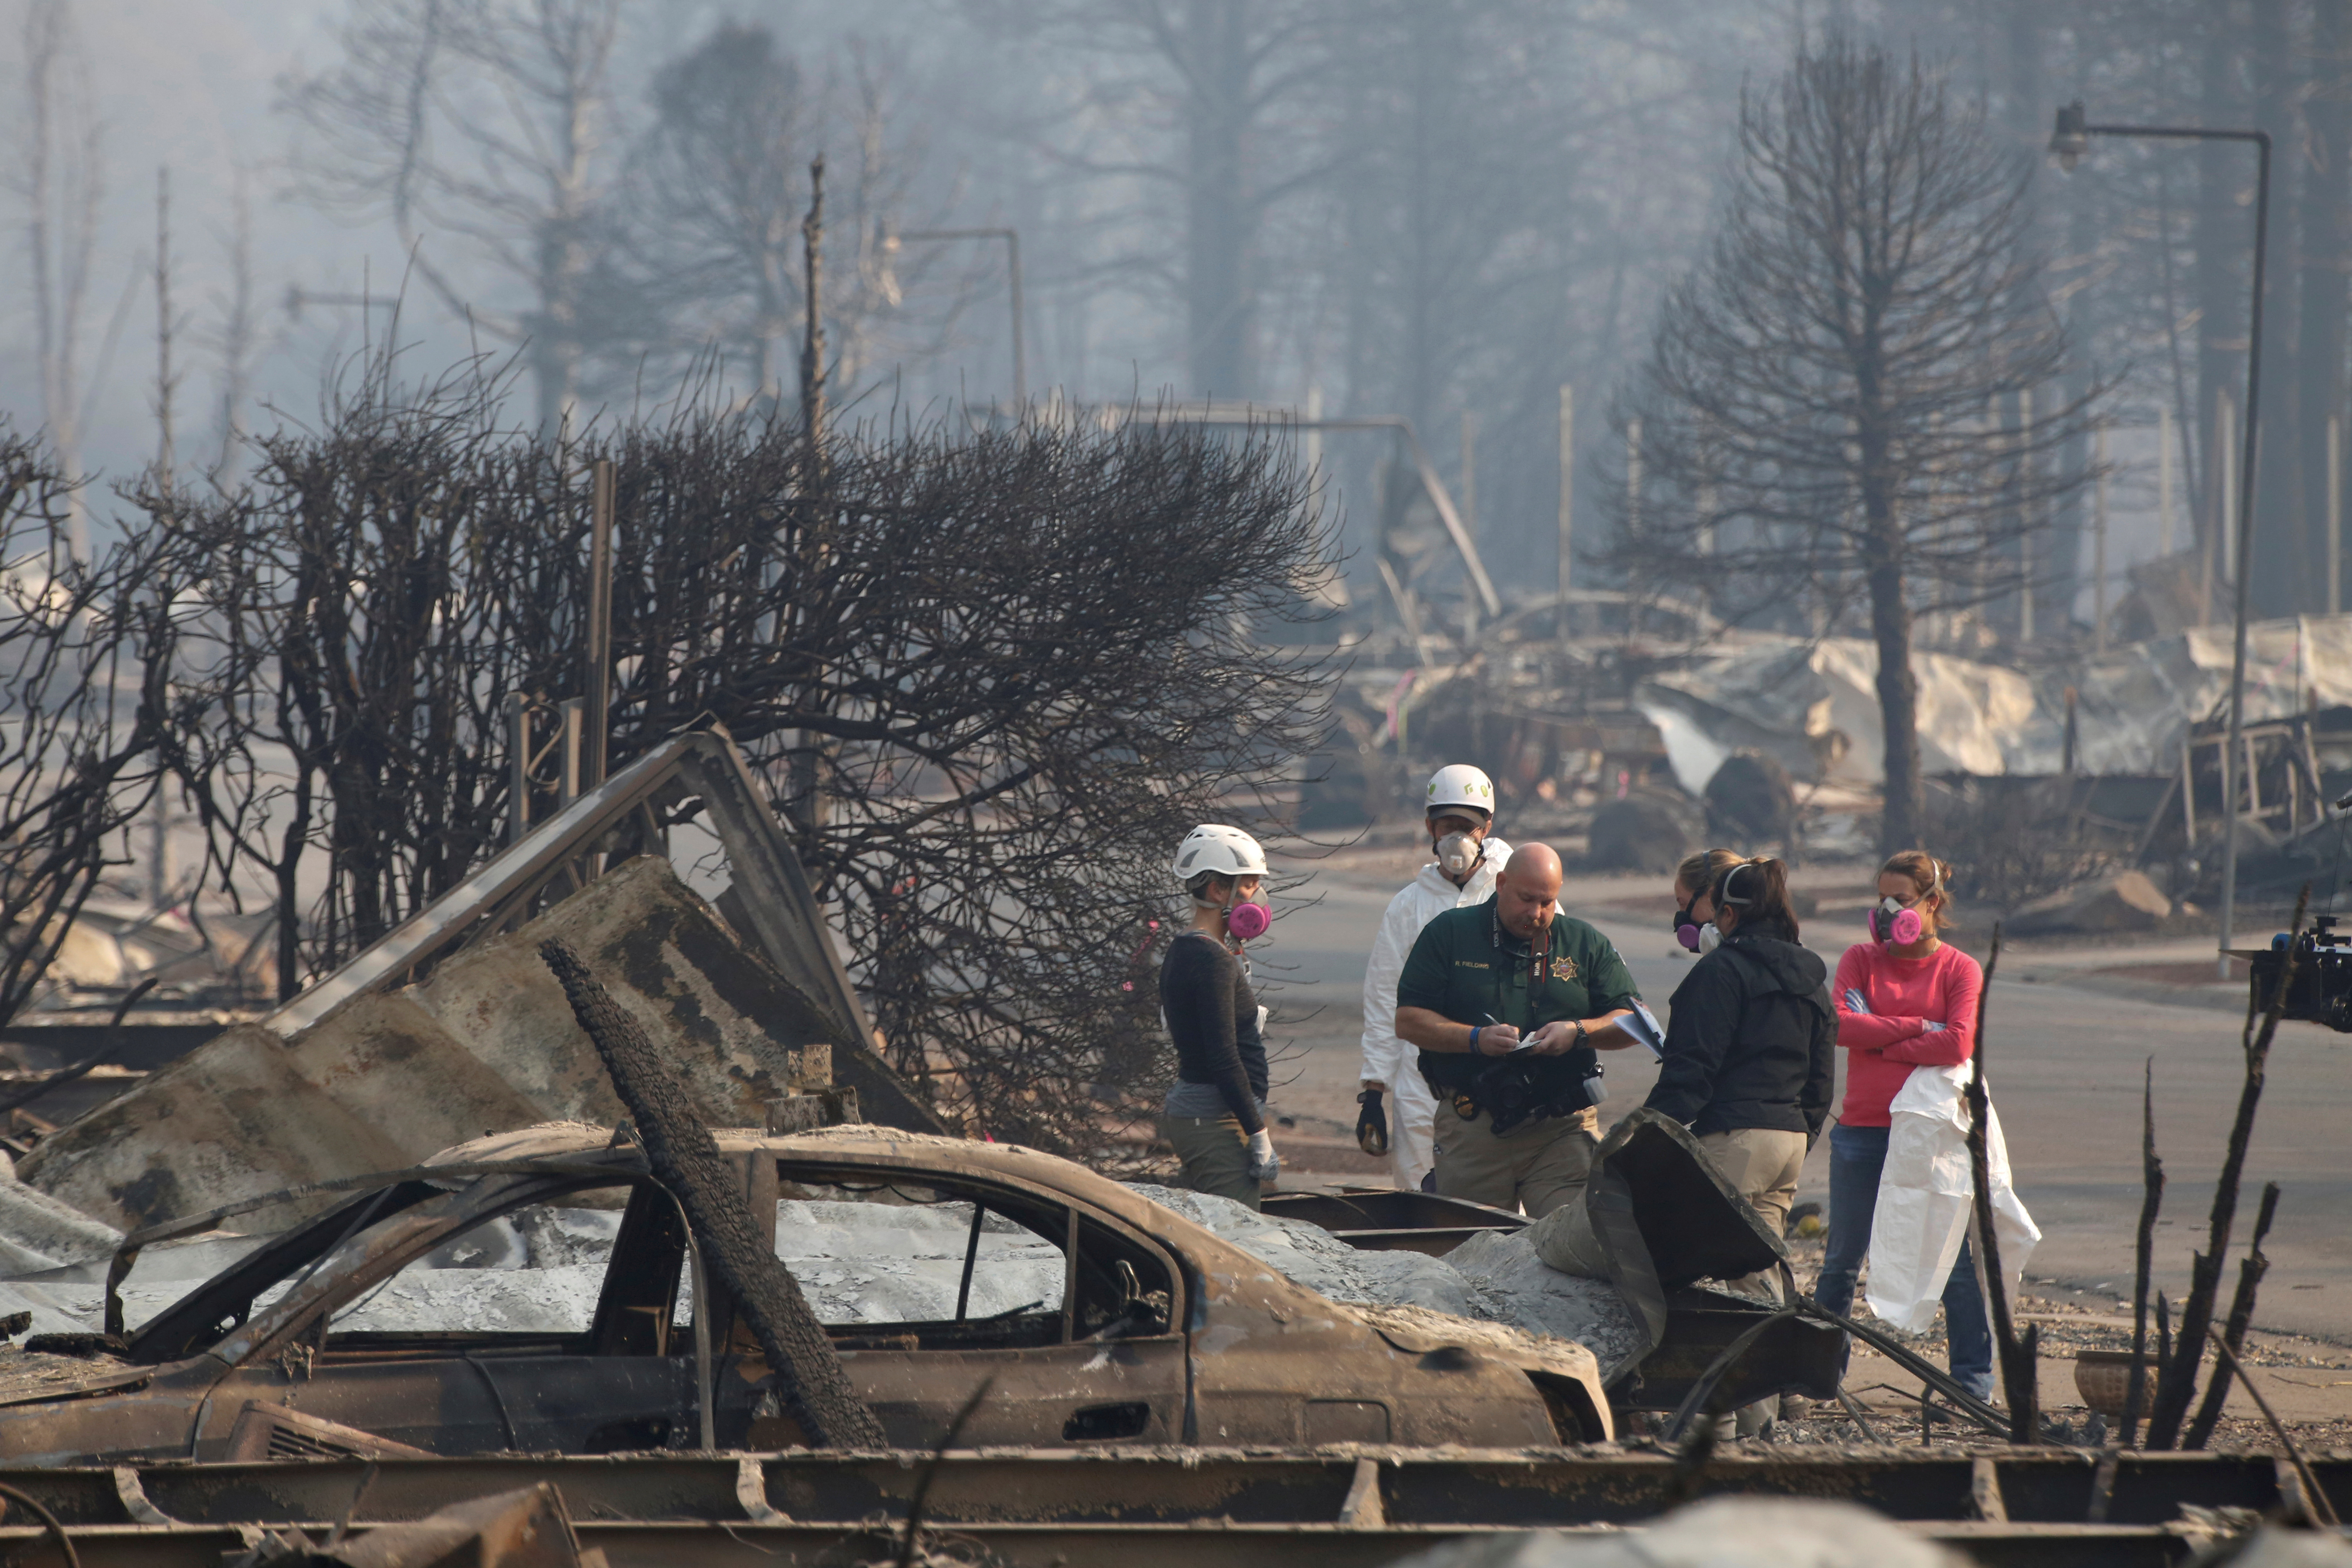 Coroners and forensic anthropologists recover human remains from a trailer home destroyed by the Camp Fire in Paradise